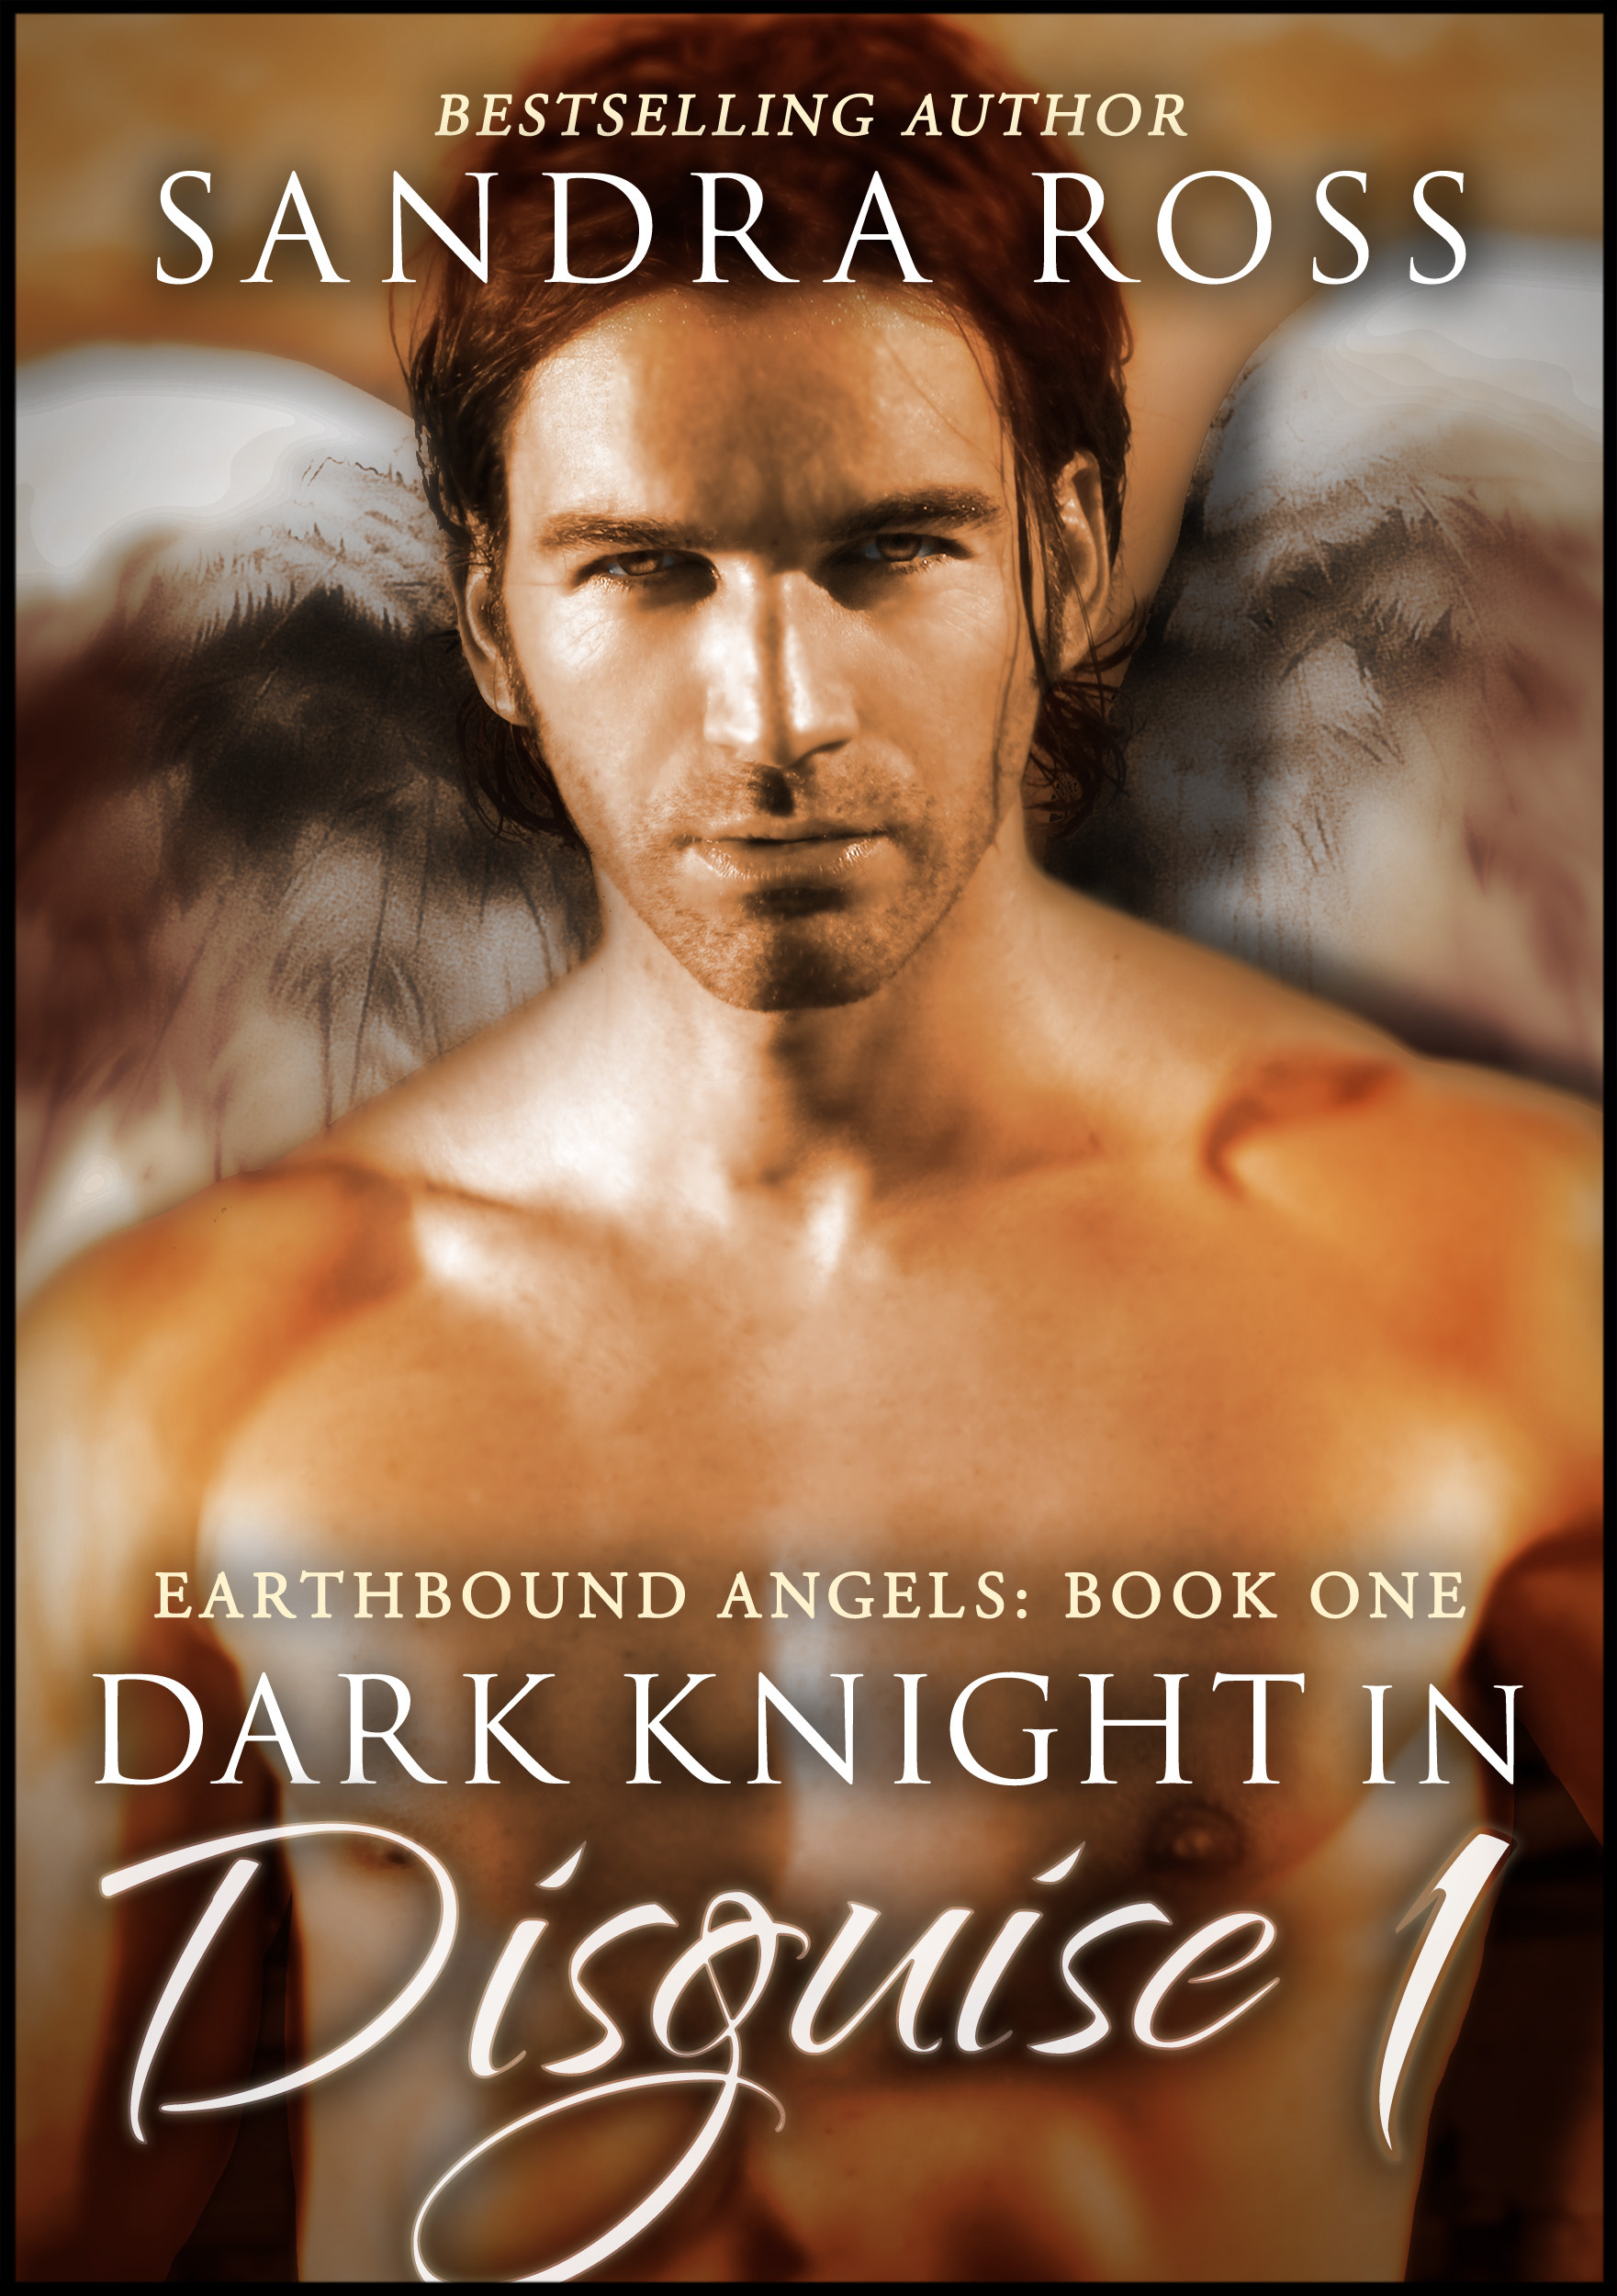 Dark Knight in Disguise I: Earthbound Angels Book 1